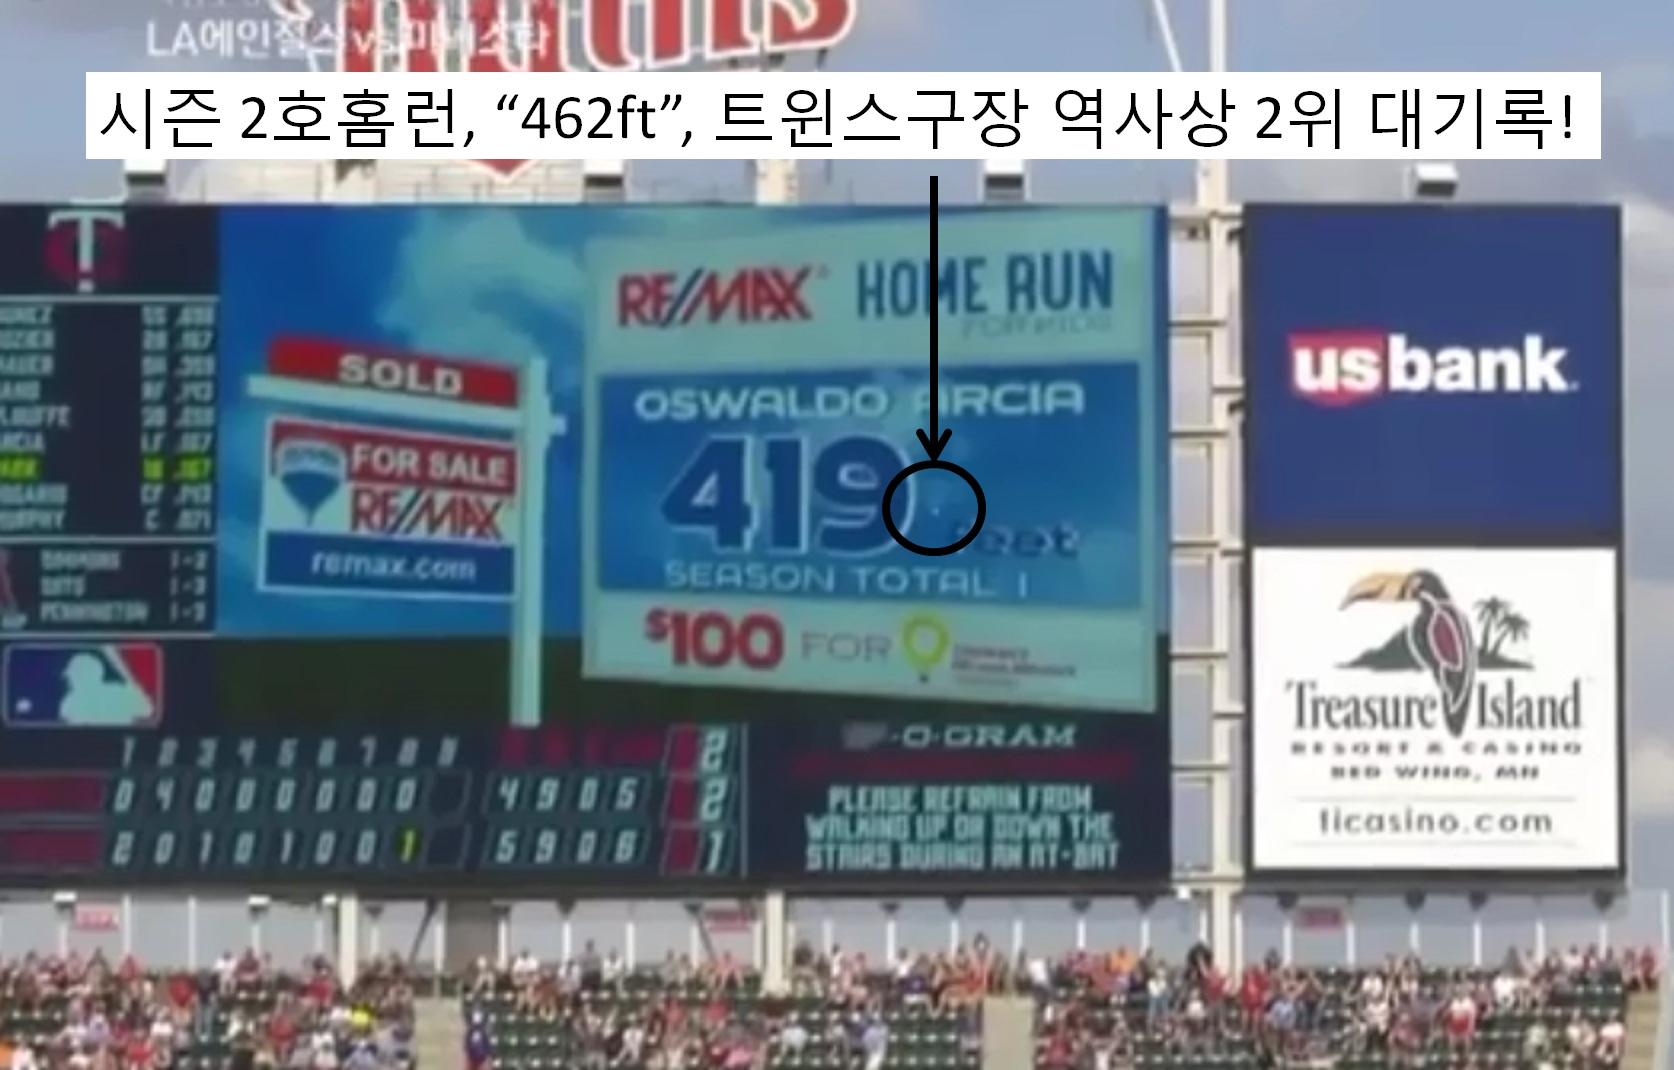 2016.04.16 - vs LA Angels 2nd HomeRun-2.jpg